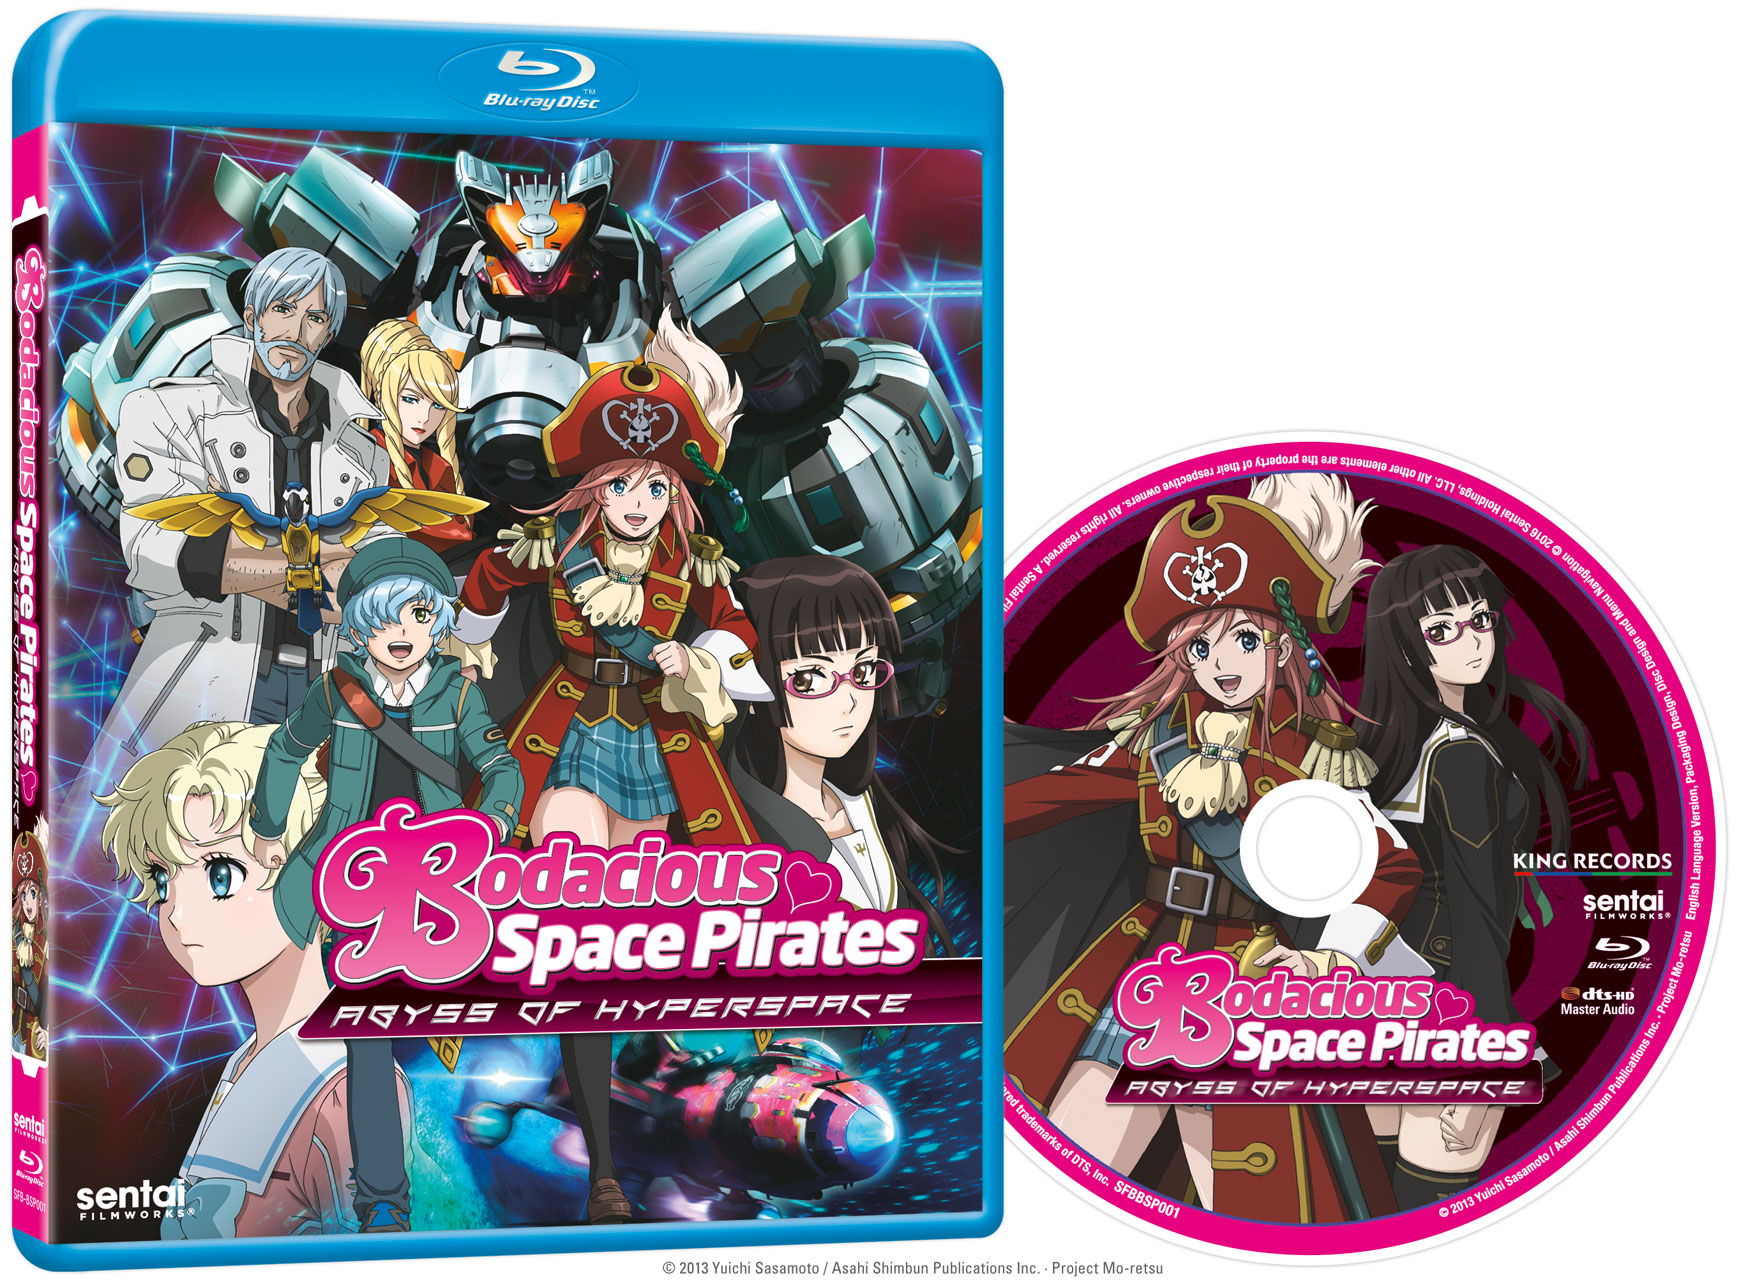 Bodacious Space Pirates Abyss of Hyperspace Movie Blu-ray